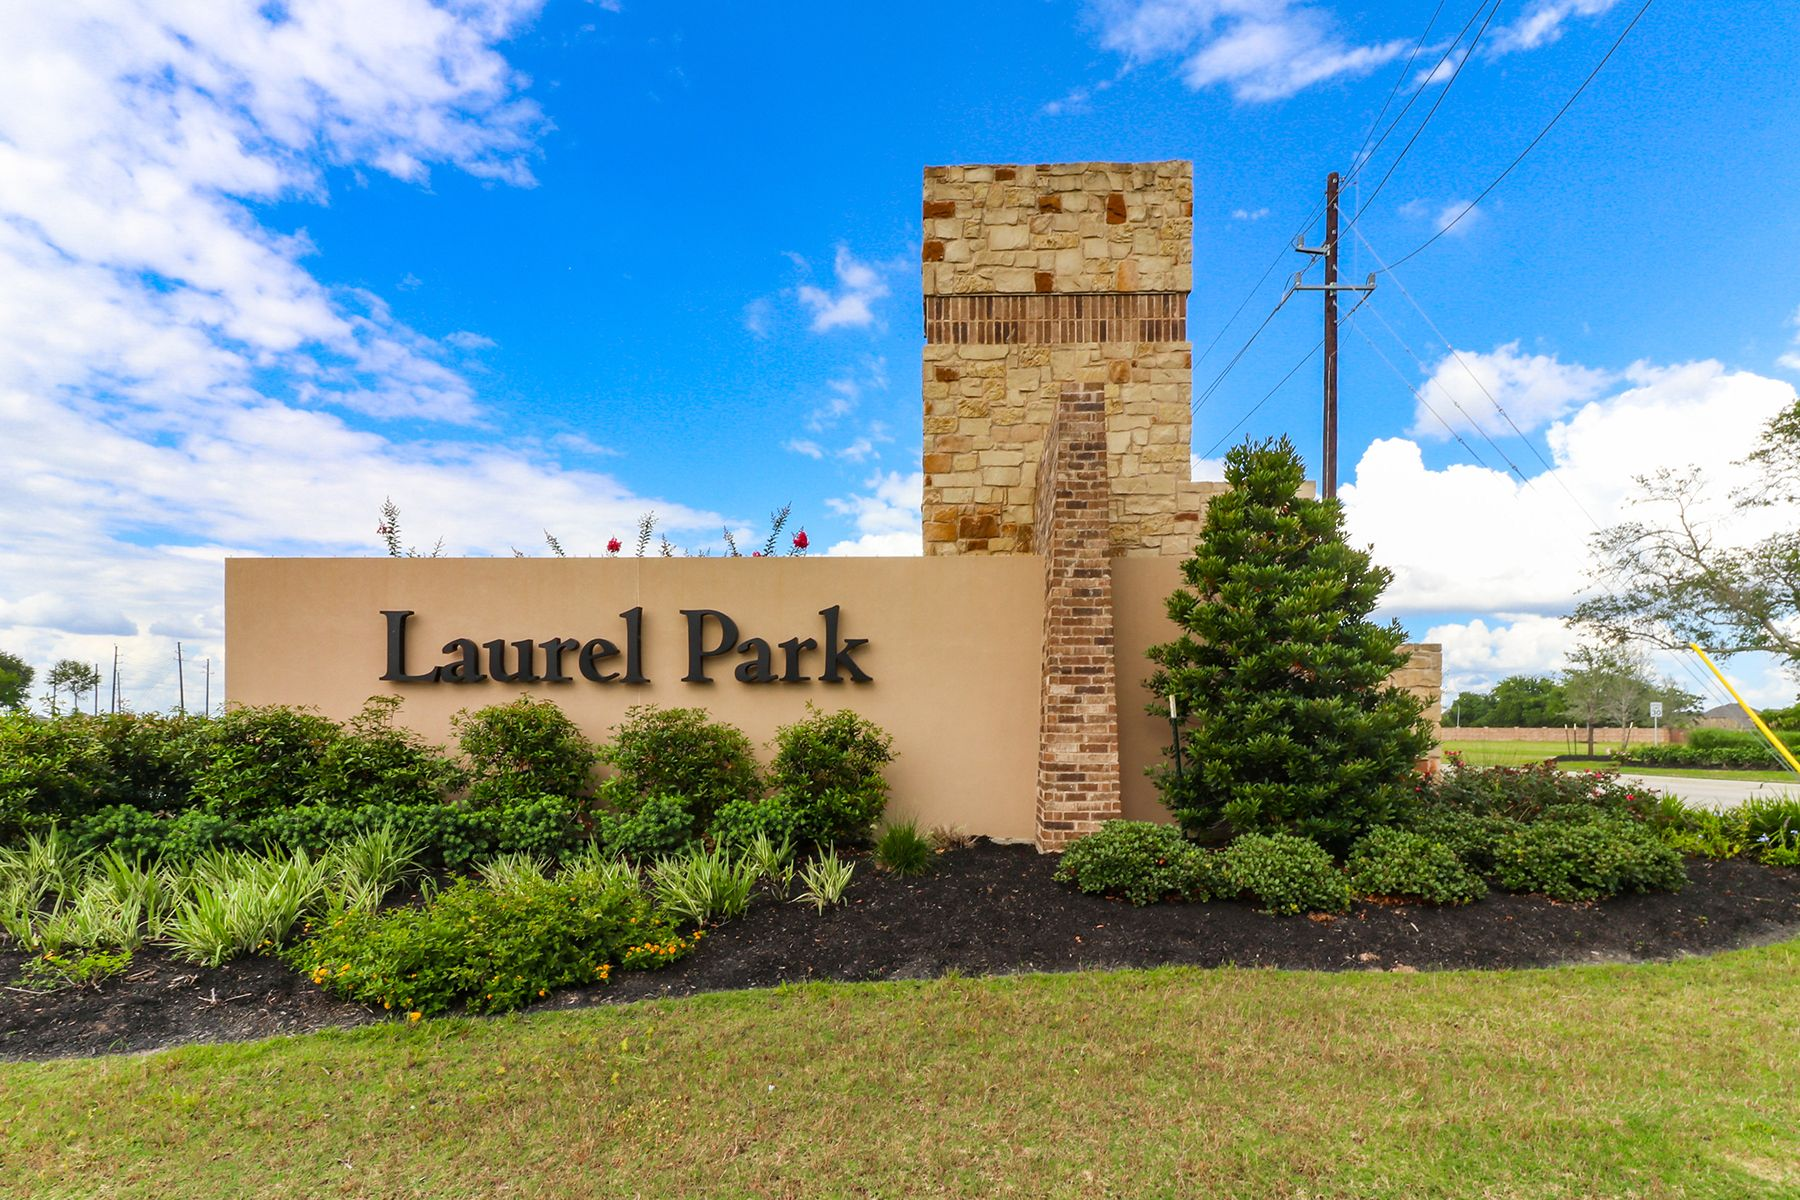 Laurel Park Entrance